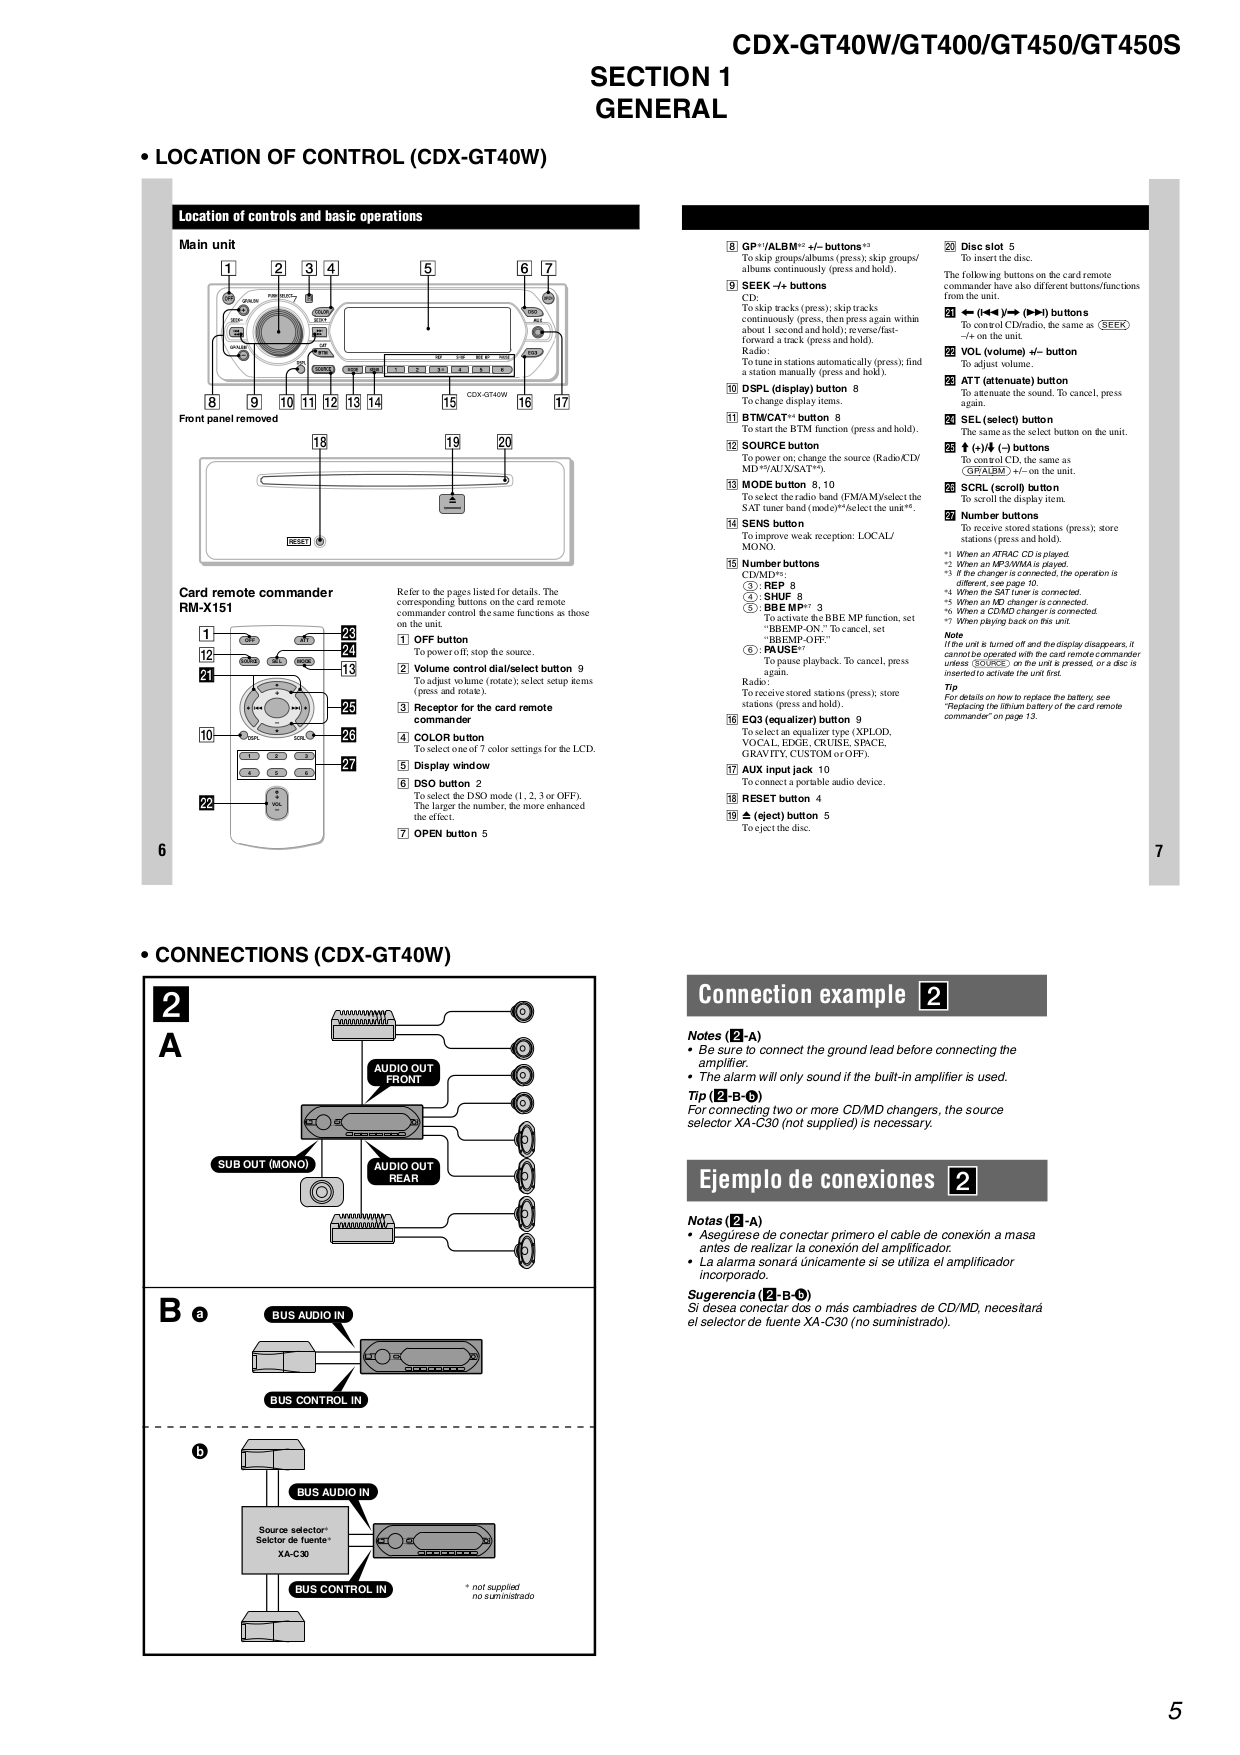 Wiring Diagram For Sony Xplod Cdx Gt300 : Pdf manual for sony car receiver cdx gt